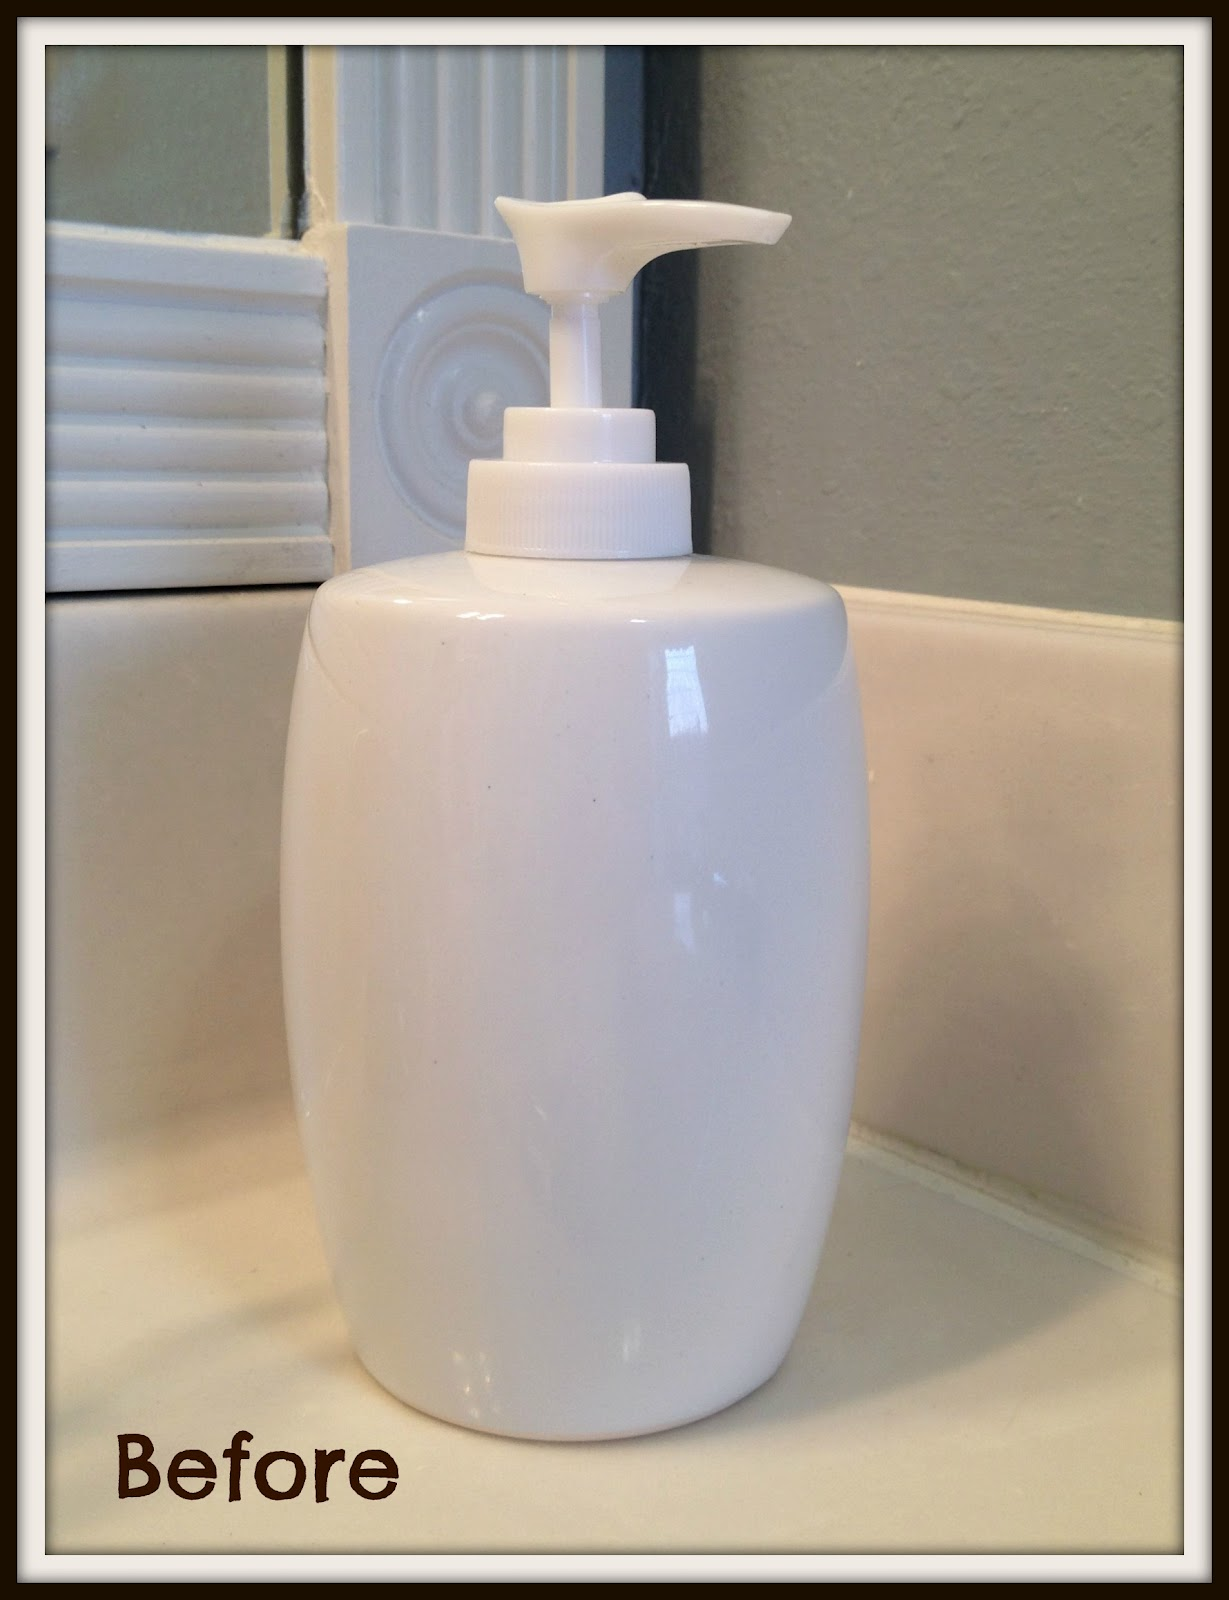 Restroom Soap Dispensers Crafty In Crosby Bathroom Soap Dispenser